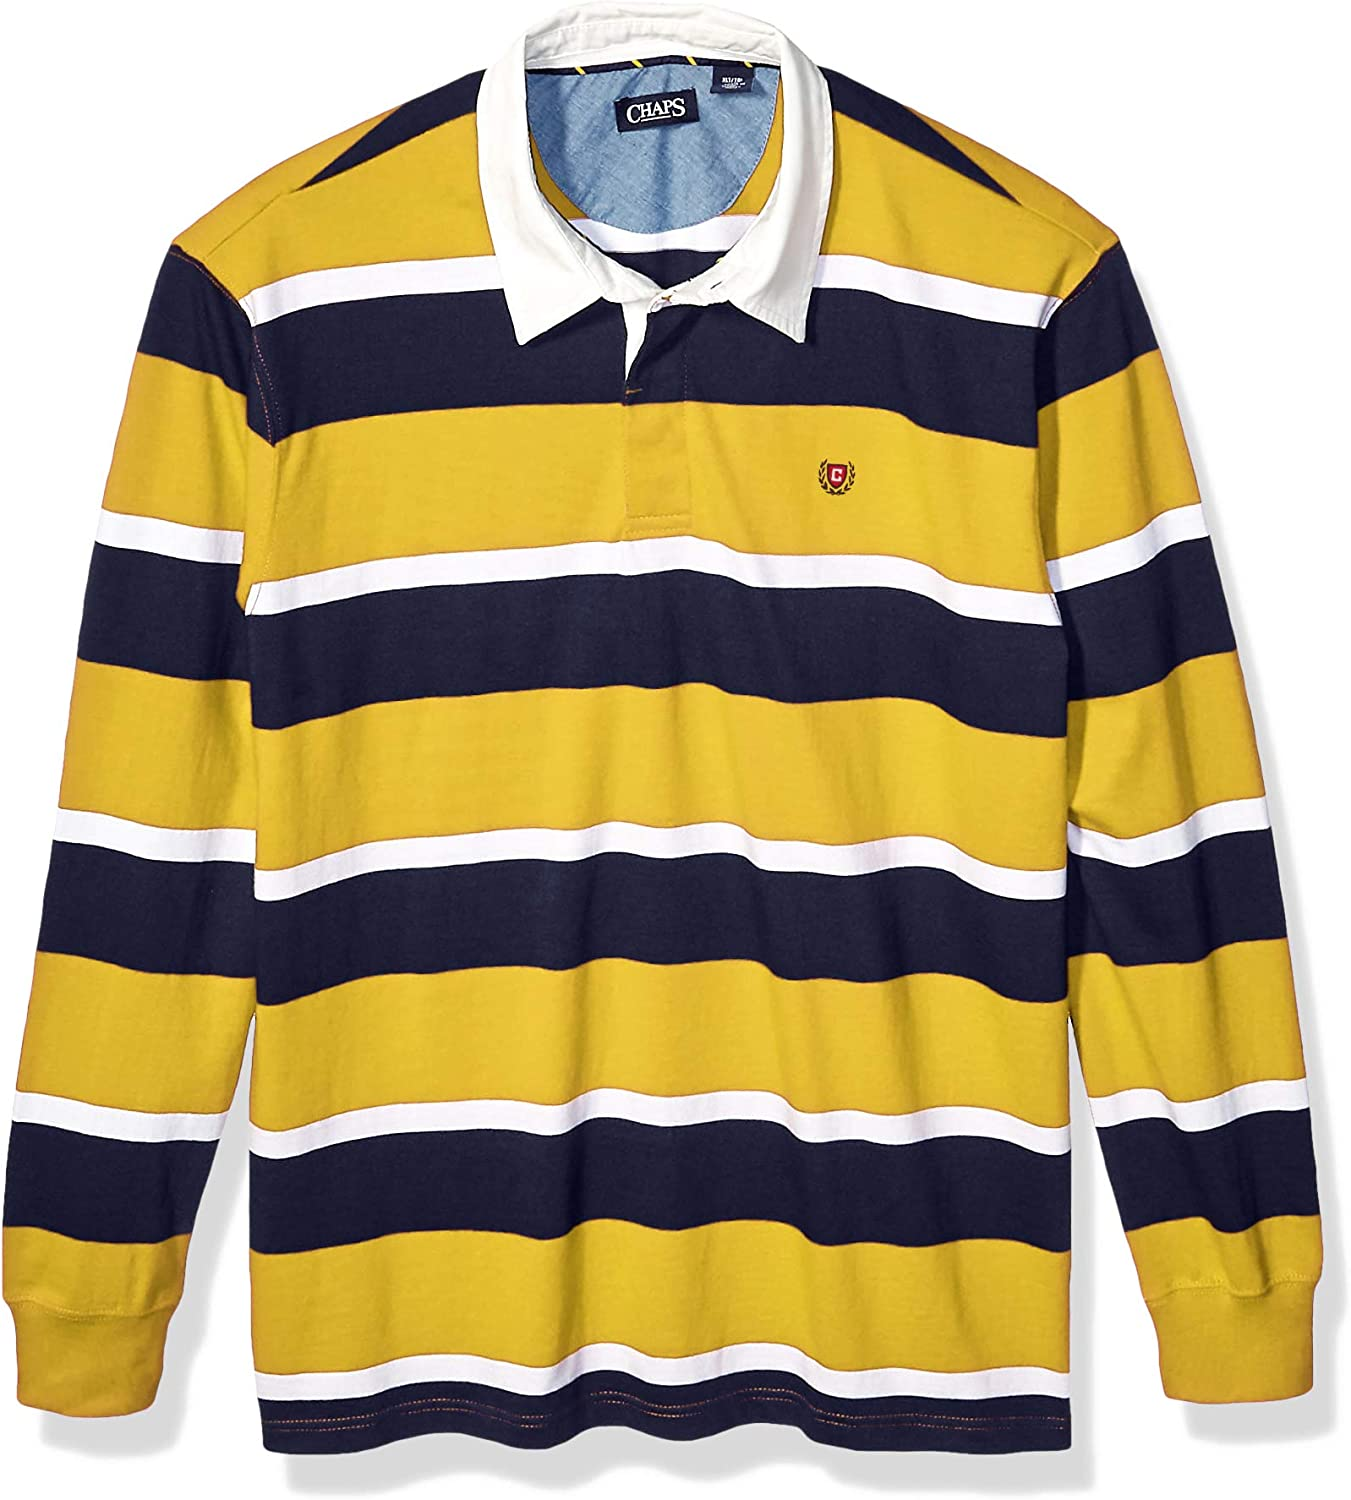 Chaps Men's Big and Tall Heritage Collection Rugby Shirt